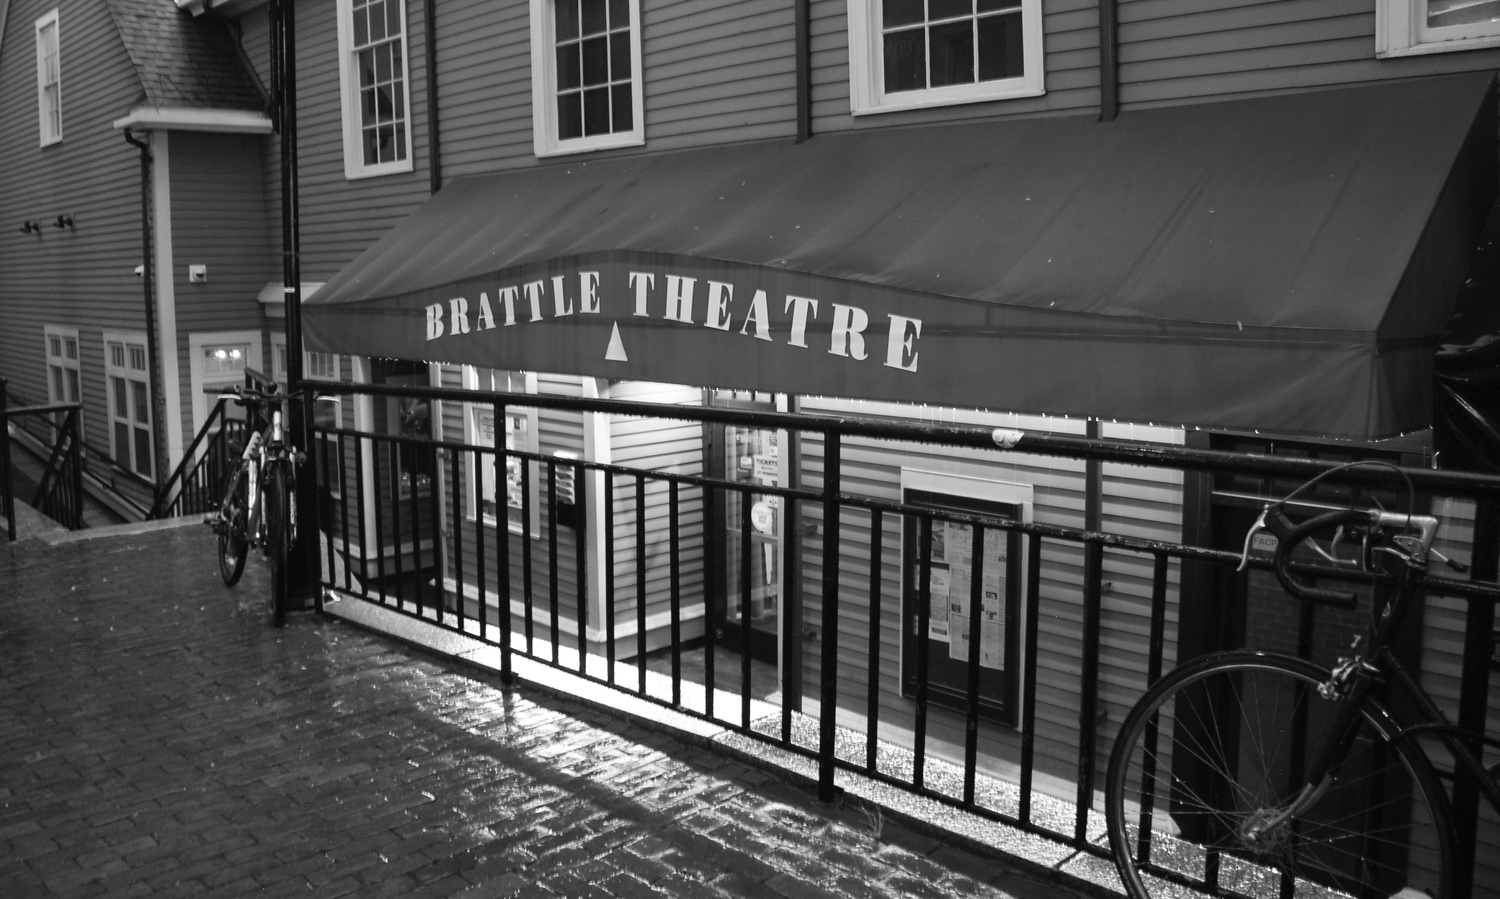 The Brattle Theatre, housed in a 130-year-old red brick building in Harvard Square, has proven instrumental in establishing the art-house and avant-garde cinema scenes in the United States.